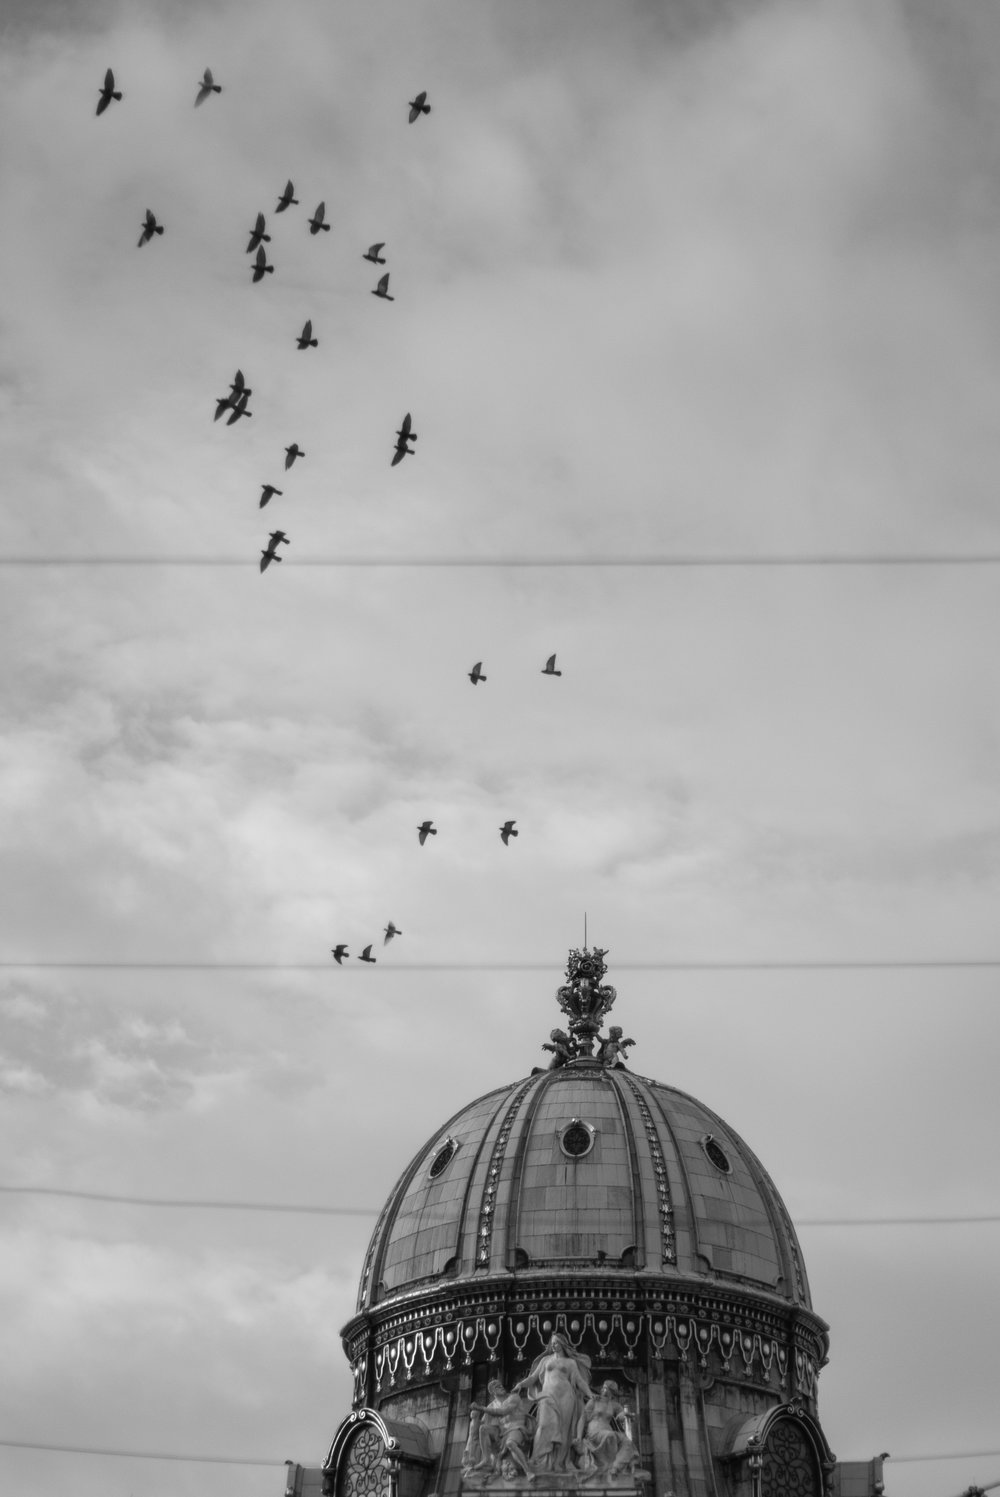 No patience here - just luck. This is why I always carry my camera turned on - I turned around just to see these birds flying over the dome. Sadly some power lines were in the way, but it adds and interesting element to the image still.